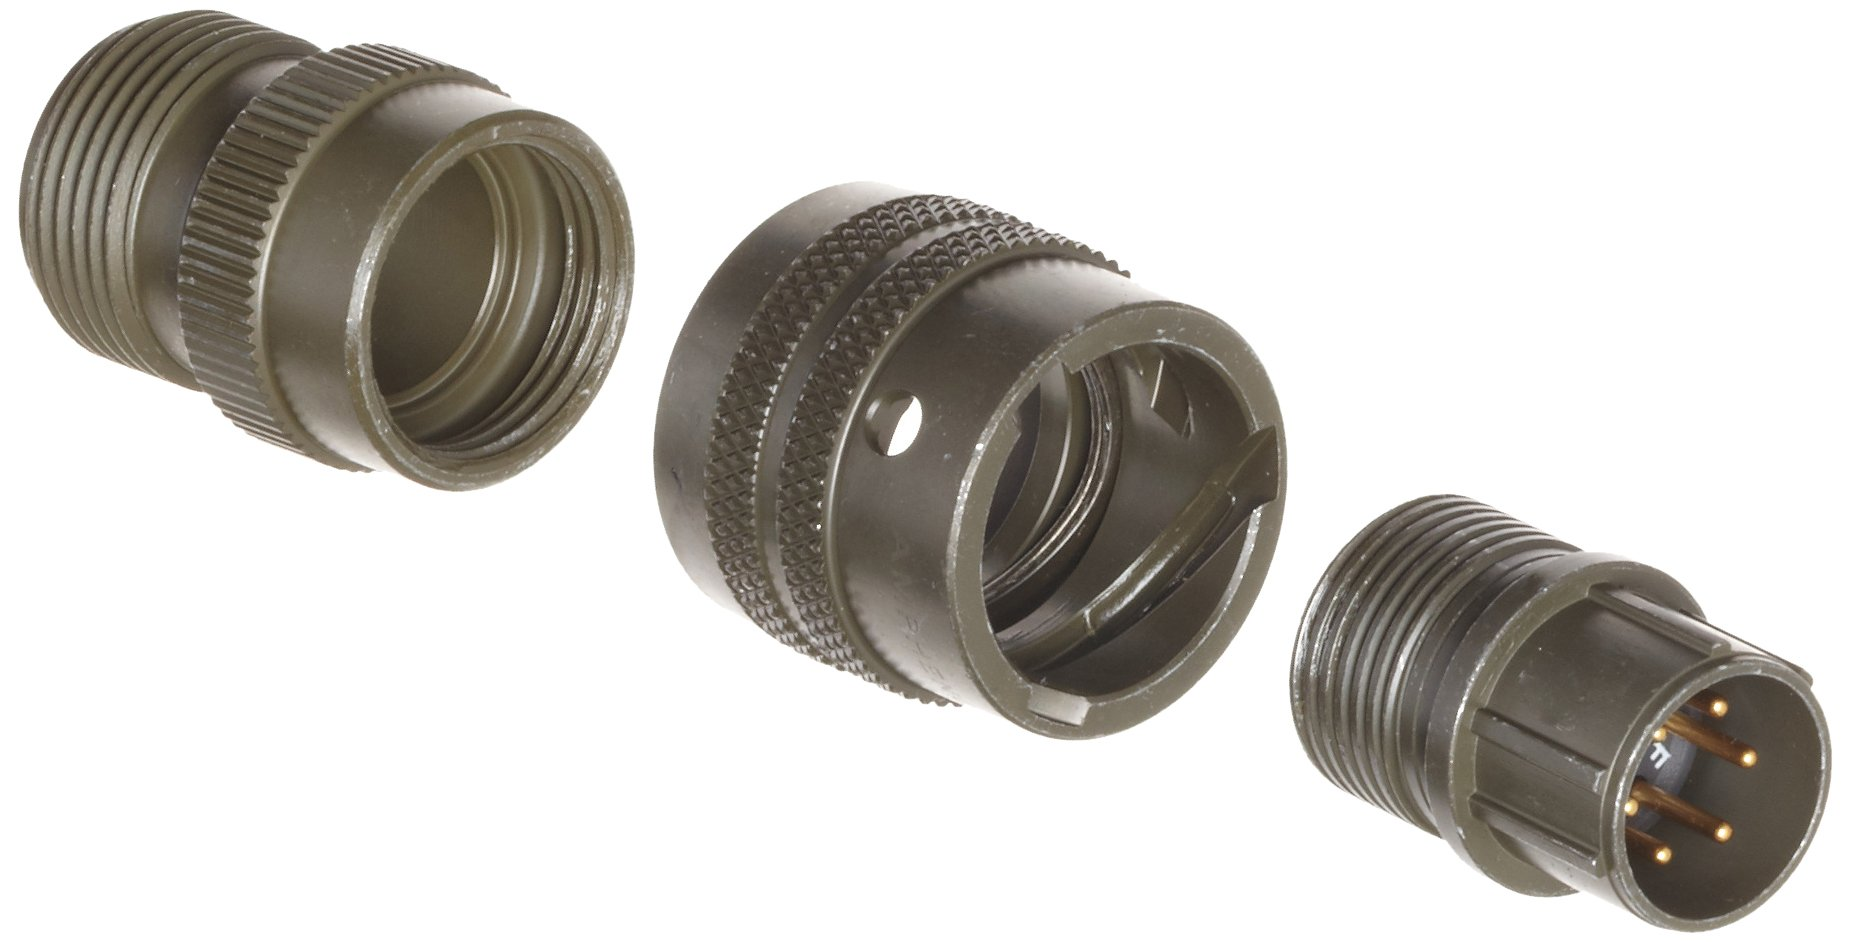 Amphenol Industrial PT06A-10-6P Circular Connector Pin, General Duty, Non-Environmental, Bayonet Coupling, Solder Termination, Straight Plug, 10-6 Insert Arrangement, 10 Shell Size, 6 Contacts